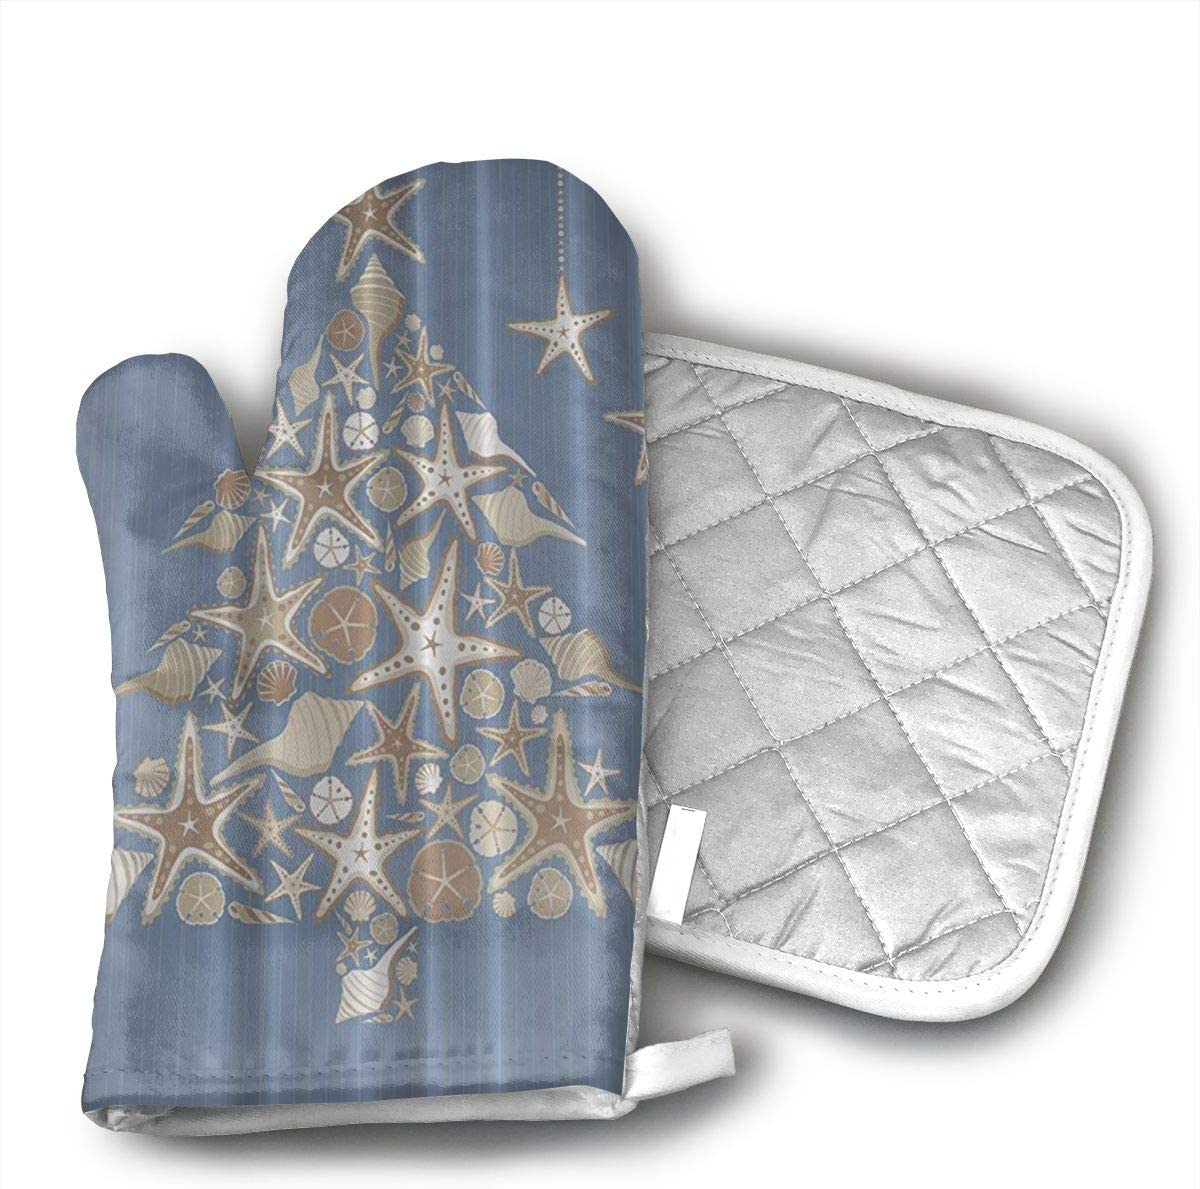 Wiqo9 Seashell Beach Christmas Oven Mitts and Pot Holders Kitchen Mitten Cooking Gloves,Cooking, Baking, BBQ.